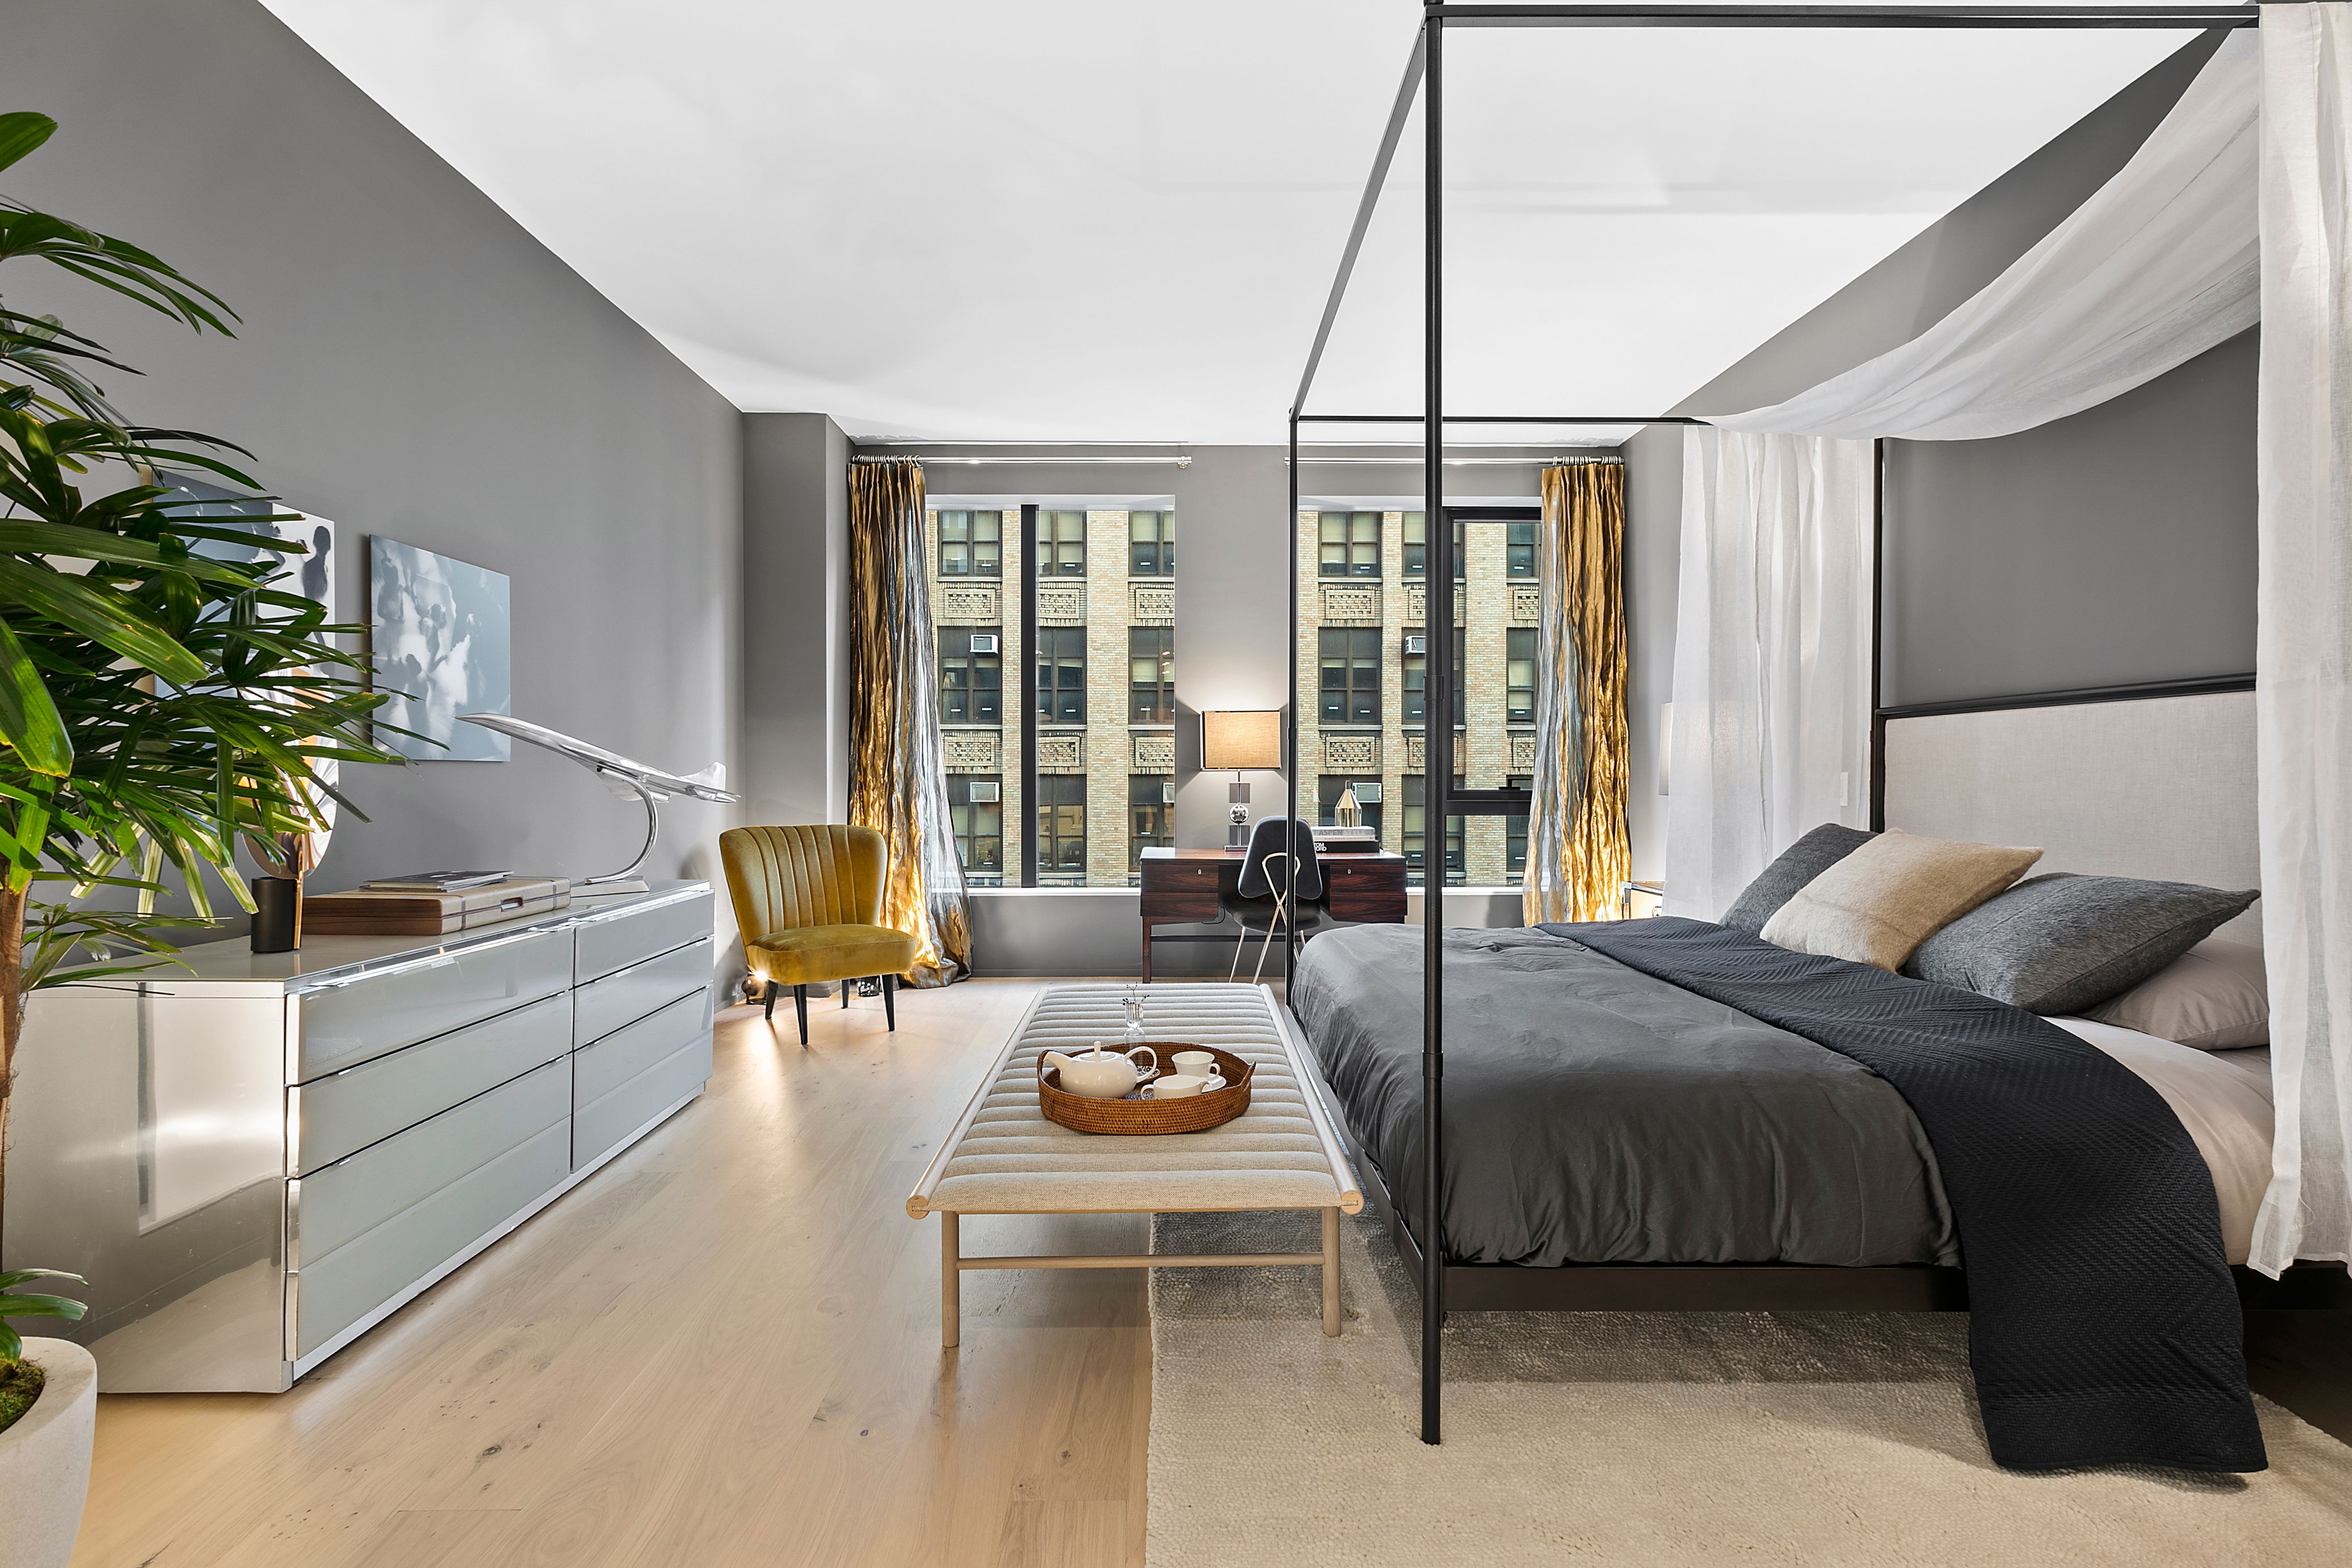 Bedroom featured in the N606 By Toll Brothers in New York, NY